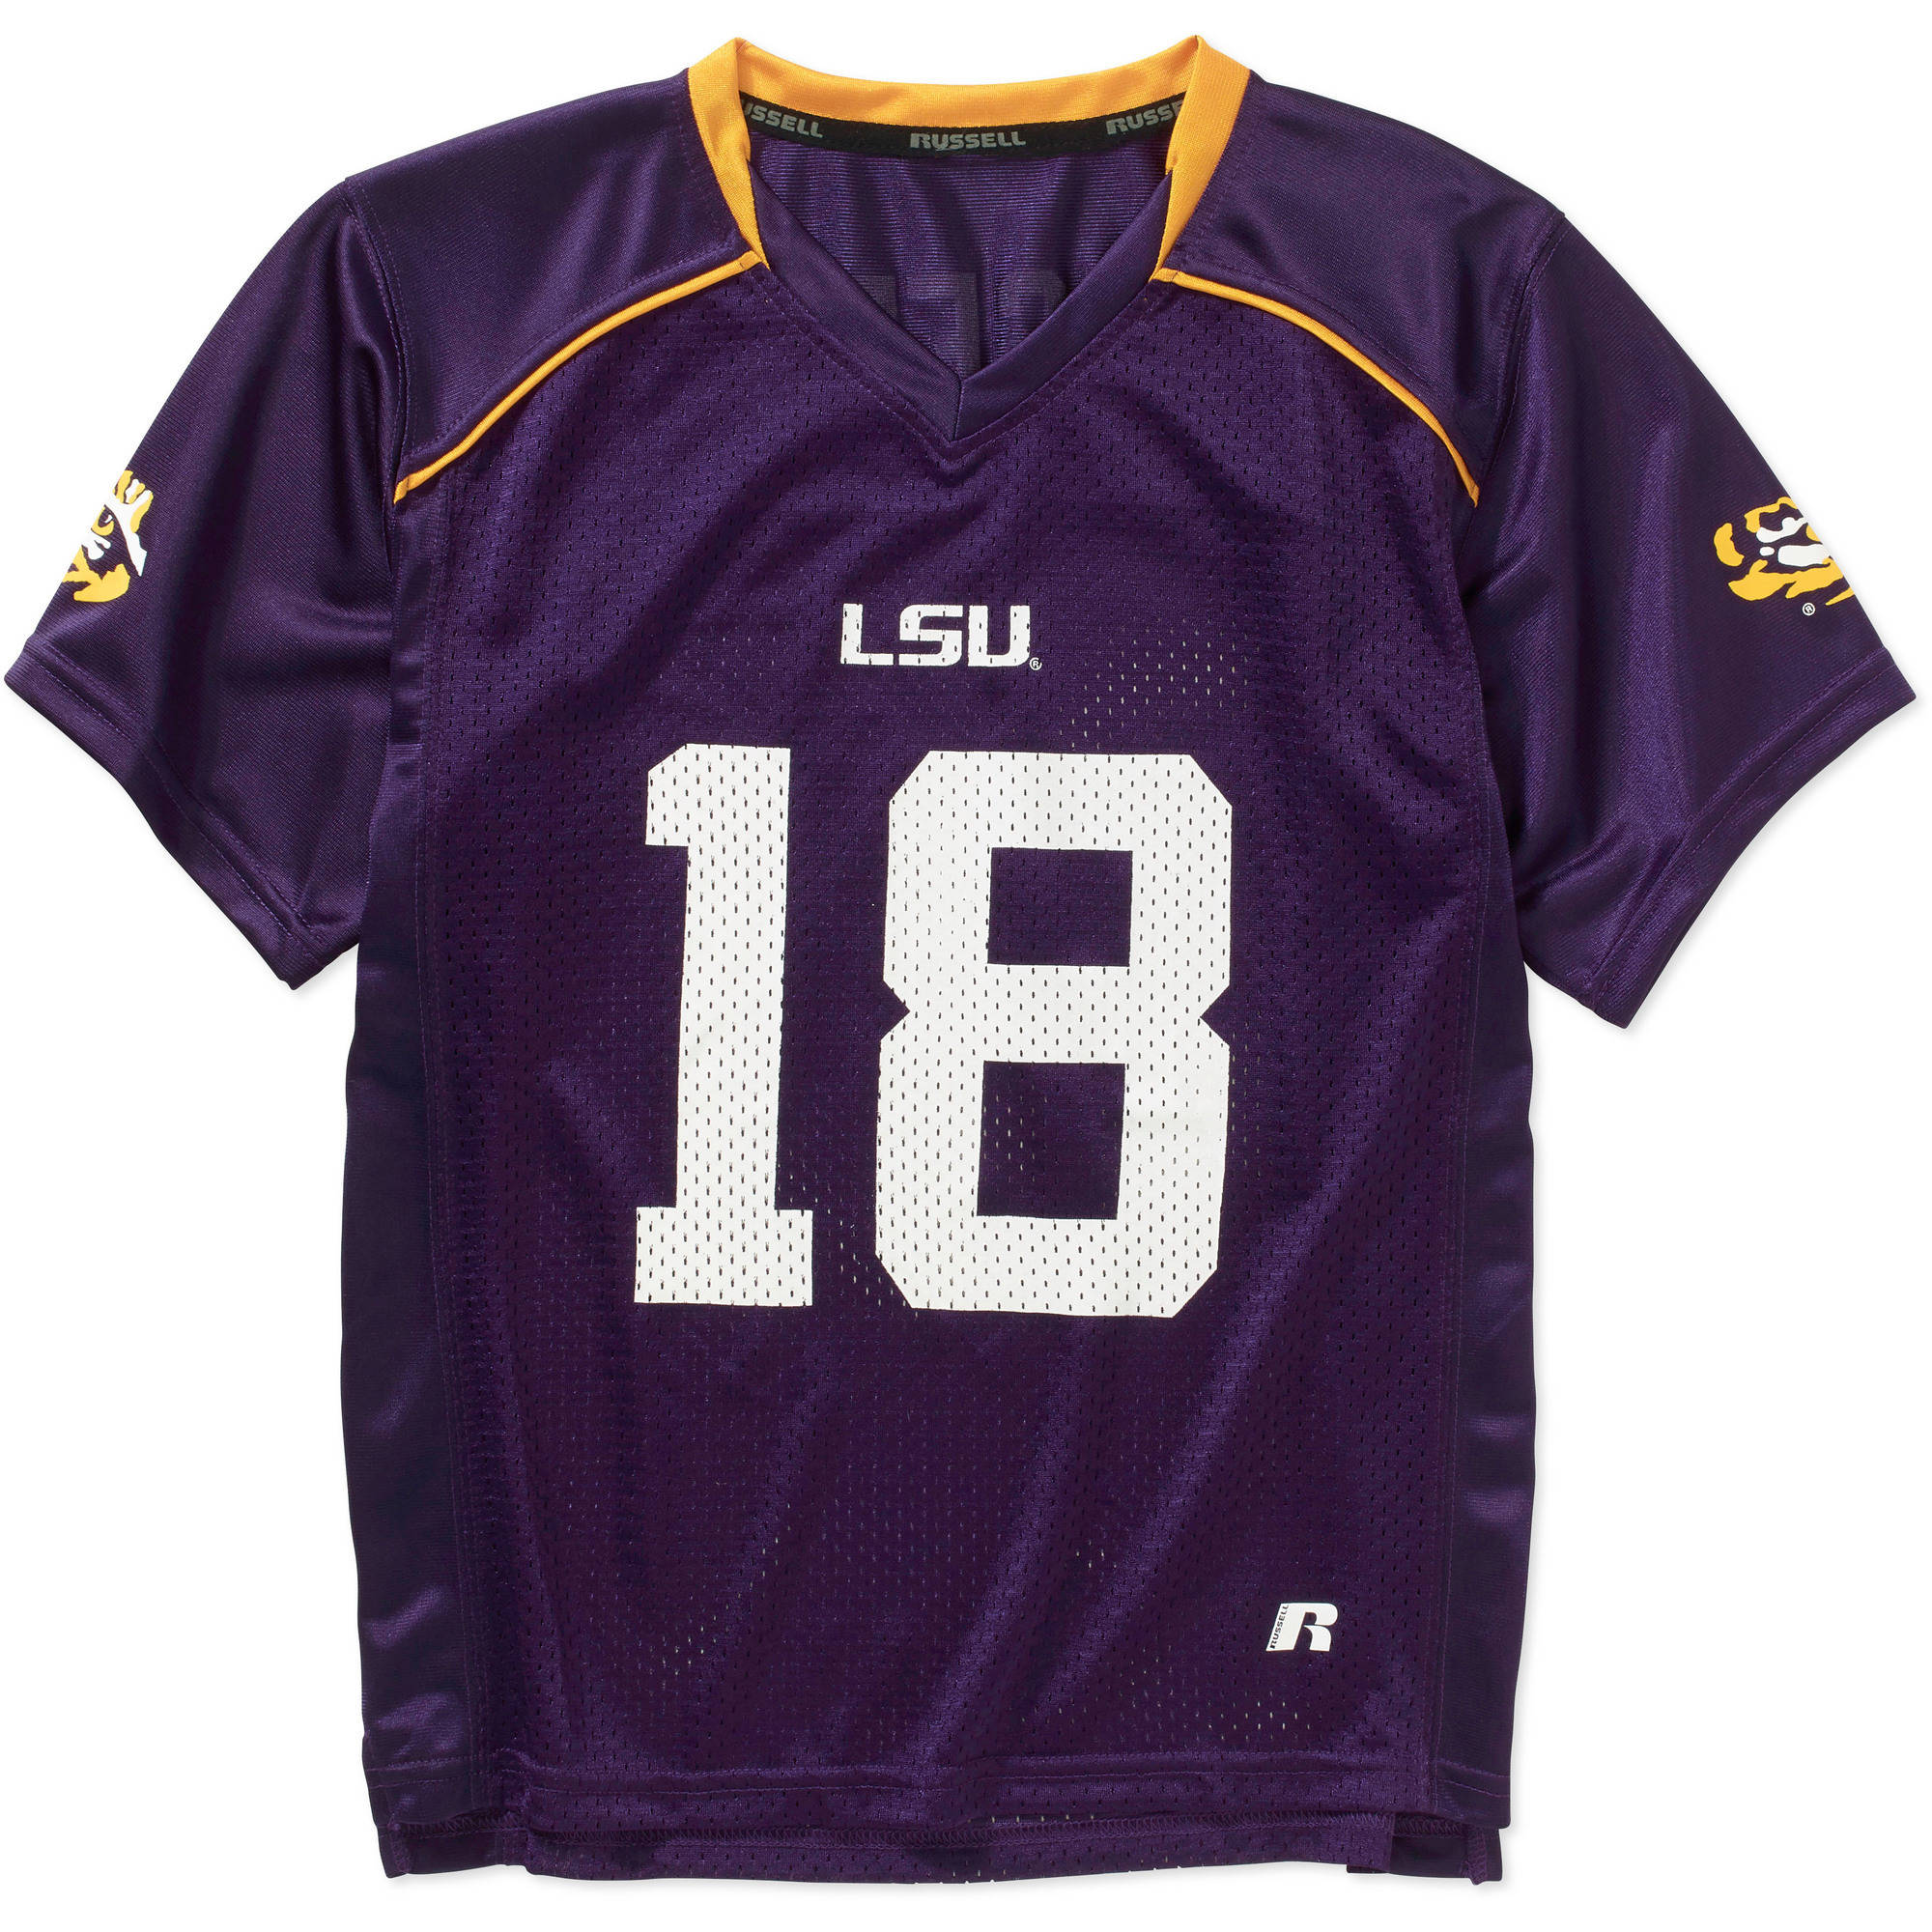 Russell NCAA LSU Tigers Boys Short Sleeve Replica Jersey